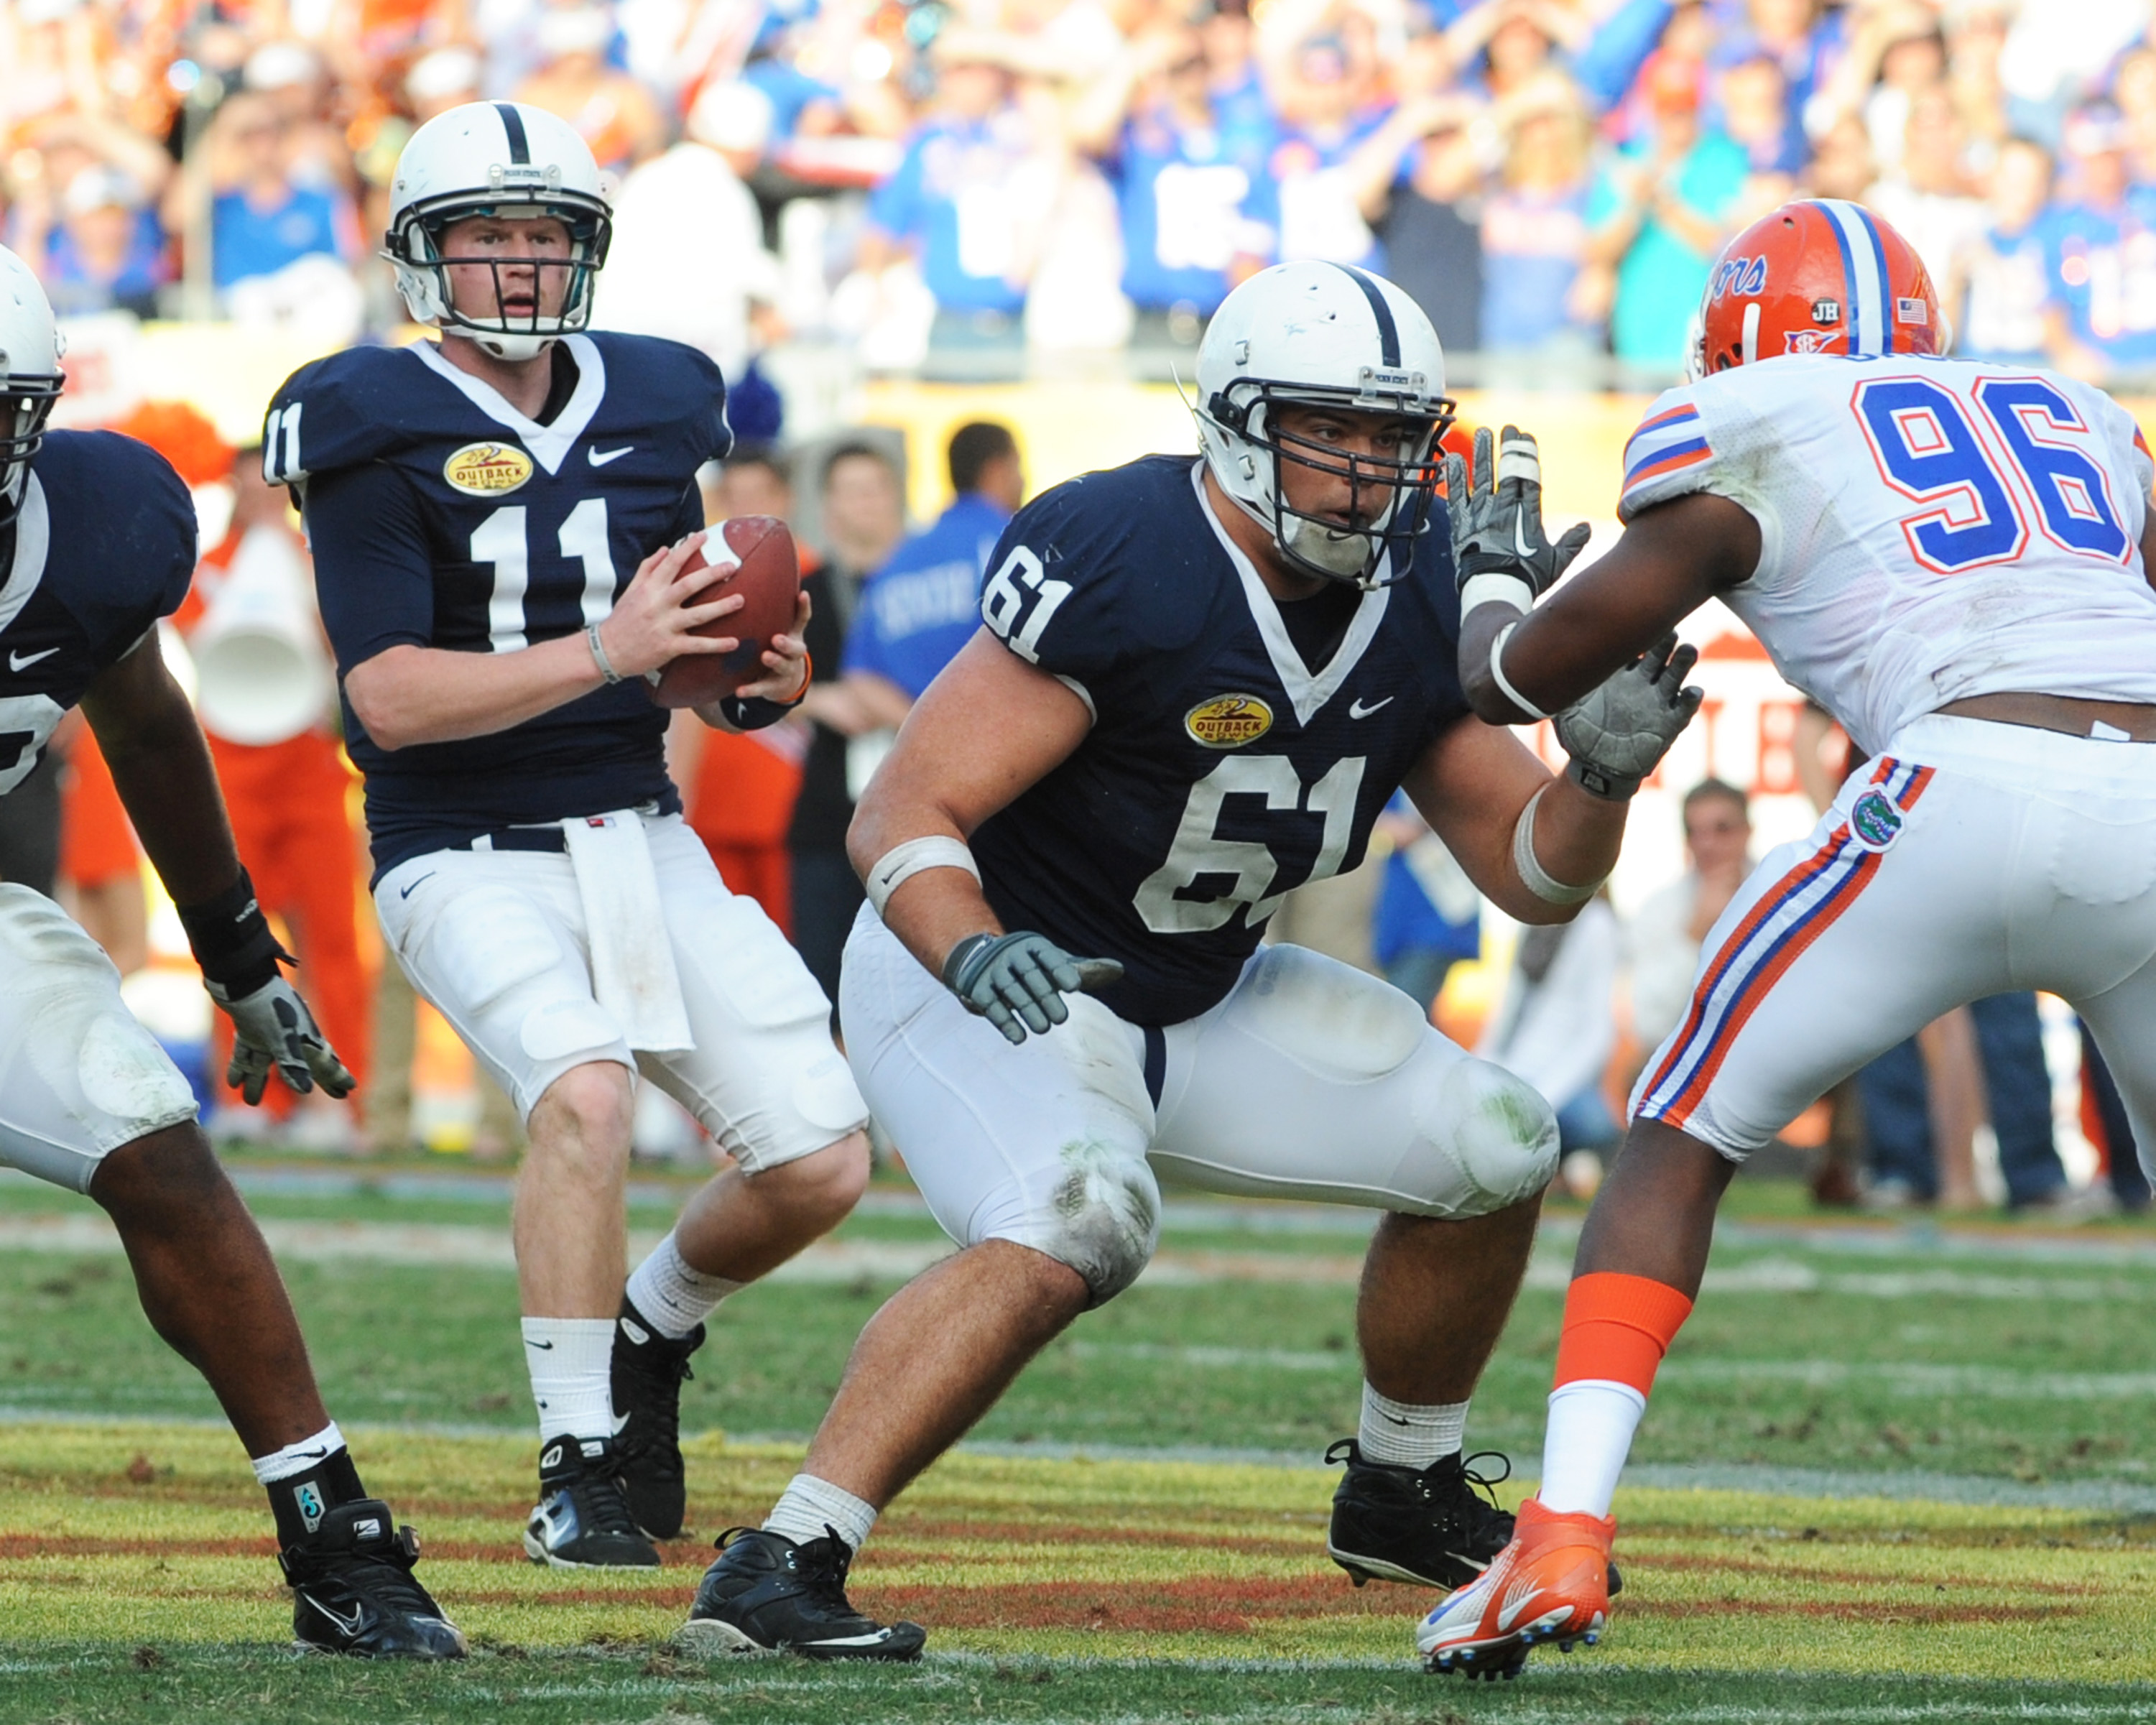 TAMPA, FL - JANUARY 1:  Guard Stefan Wisniewski #61 of the Penn State Nittany Lions blocks against the Florida Gators January 1, 2010 in the 25th Outback Bowl at Raymond James Stadium in Tampa, Florida.  (Photo by Al Messerschmidt/Getty Images)